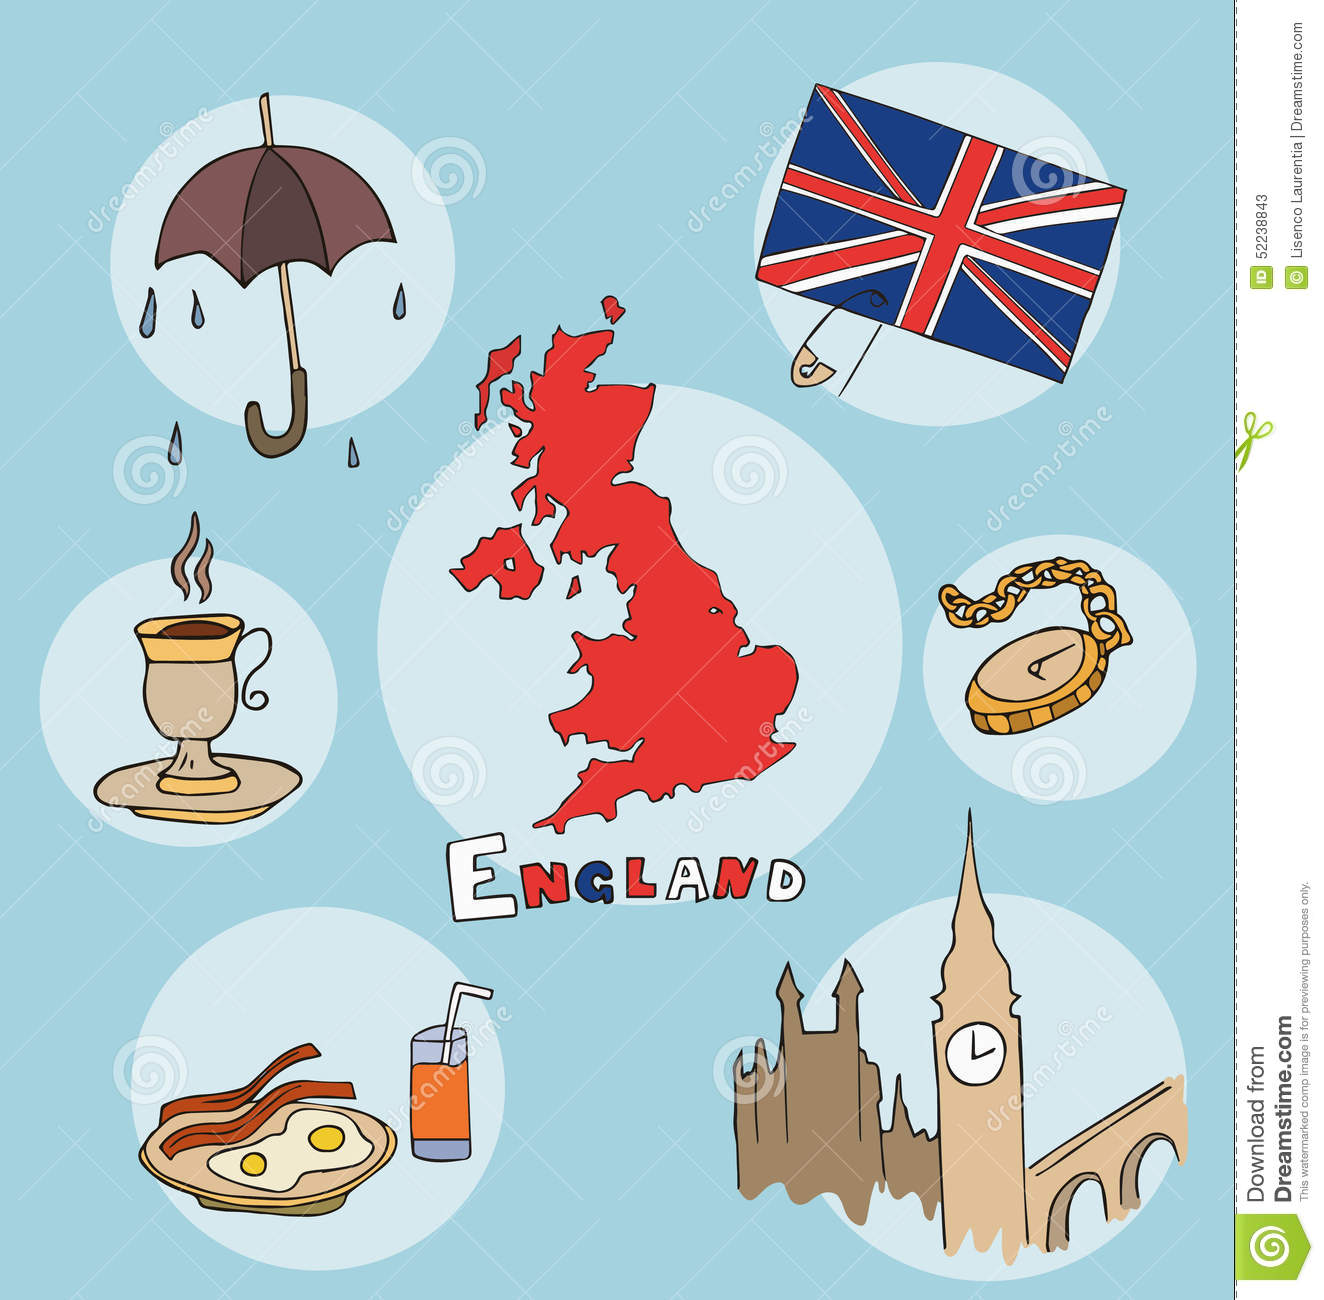 Yin and yang furthermore 6778000 likewise Stock Illustration Set National Profile State Spain England Cartoon World Isolated Background Hand Drawing Decorative Elements Image52238843 further African Musical Instruments in addition Seventeen. on animal guitar design